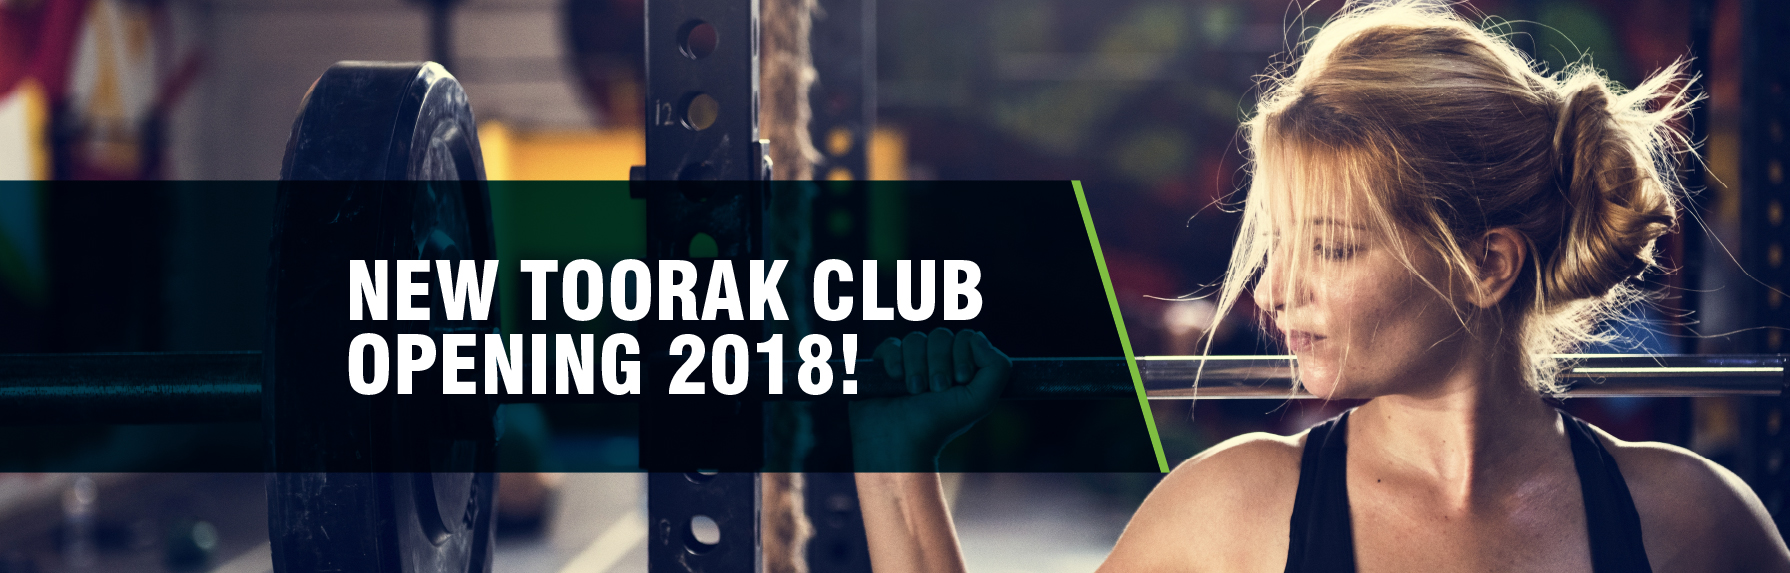 Toorak Club Foundation Memberships